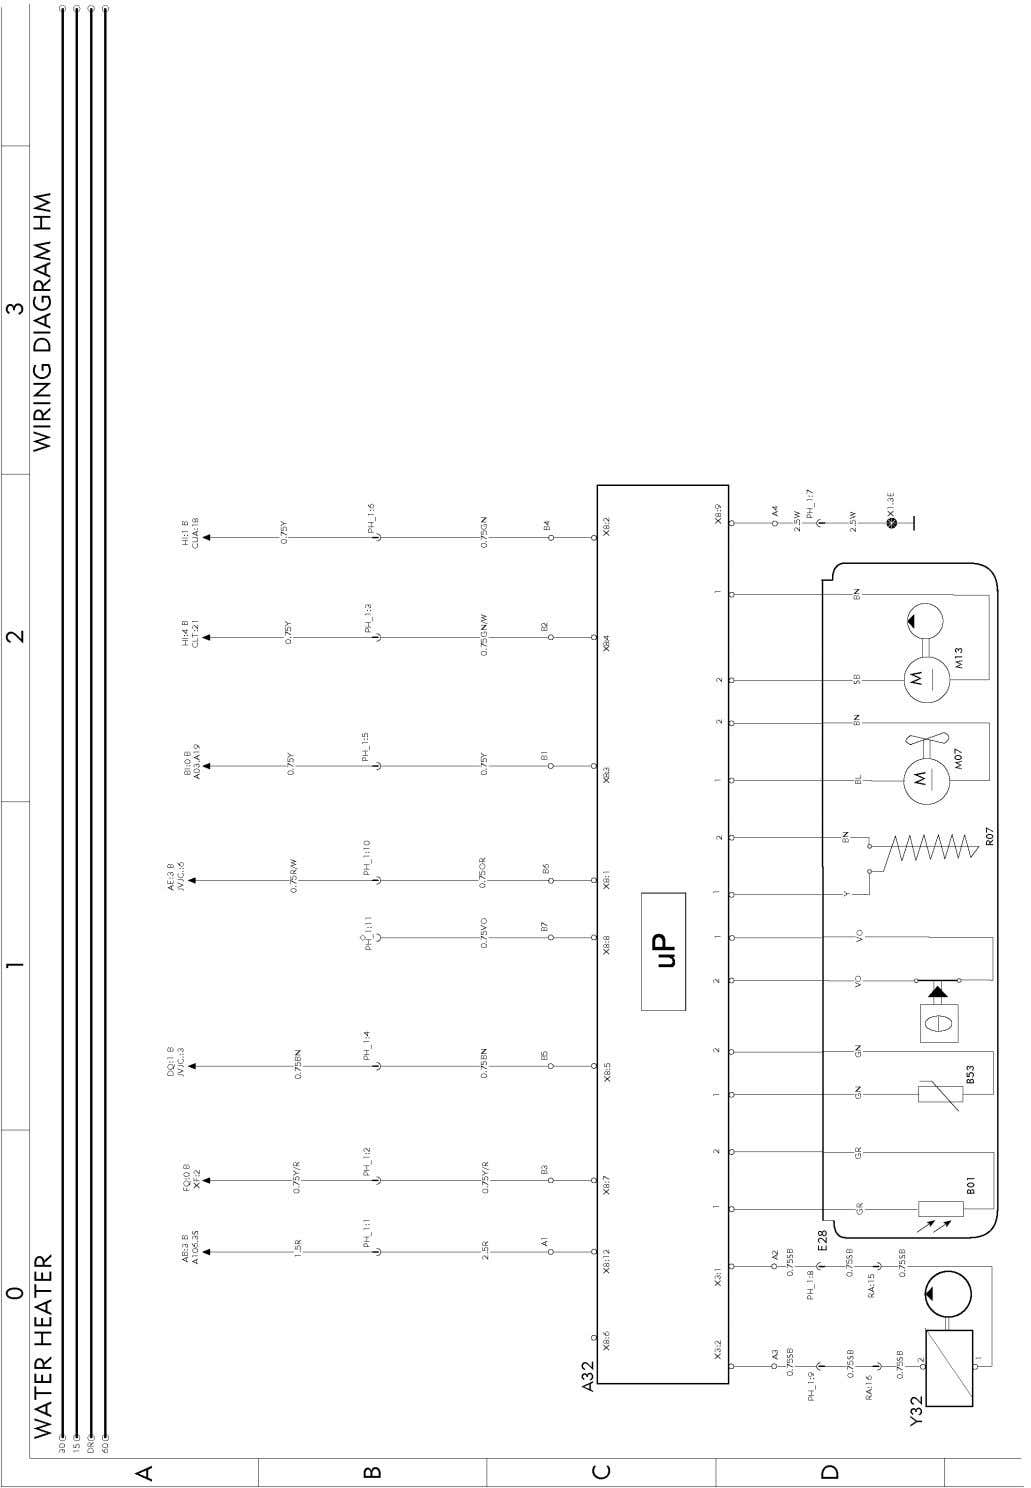 T3021467 Wiring diagram Page 81 (298)